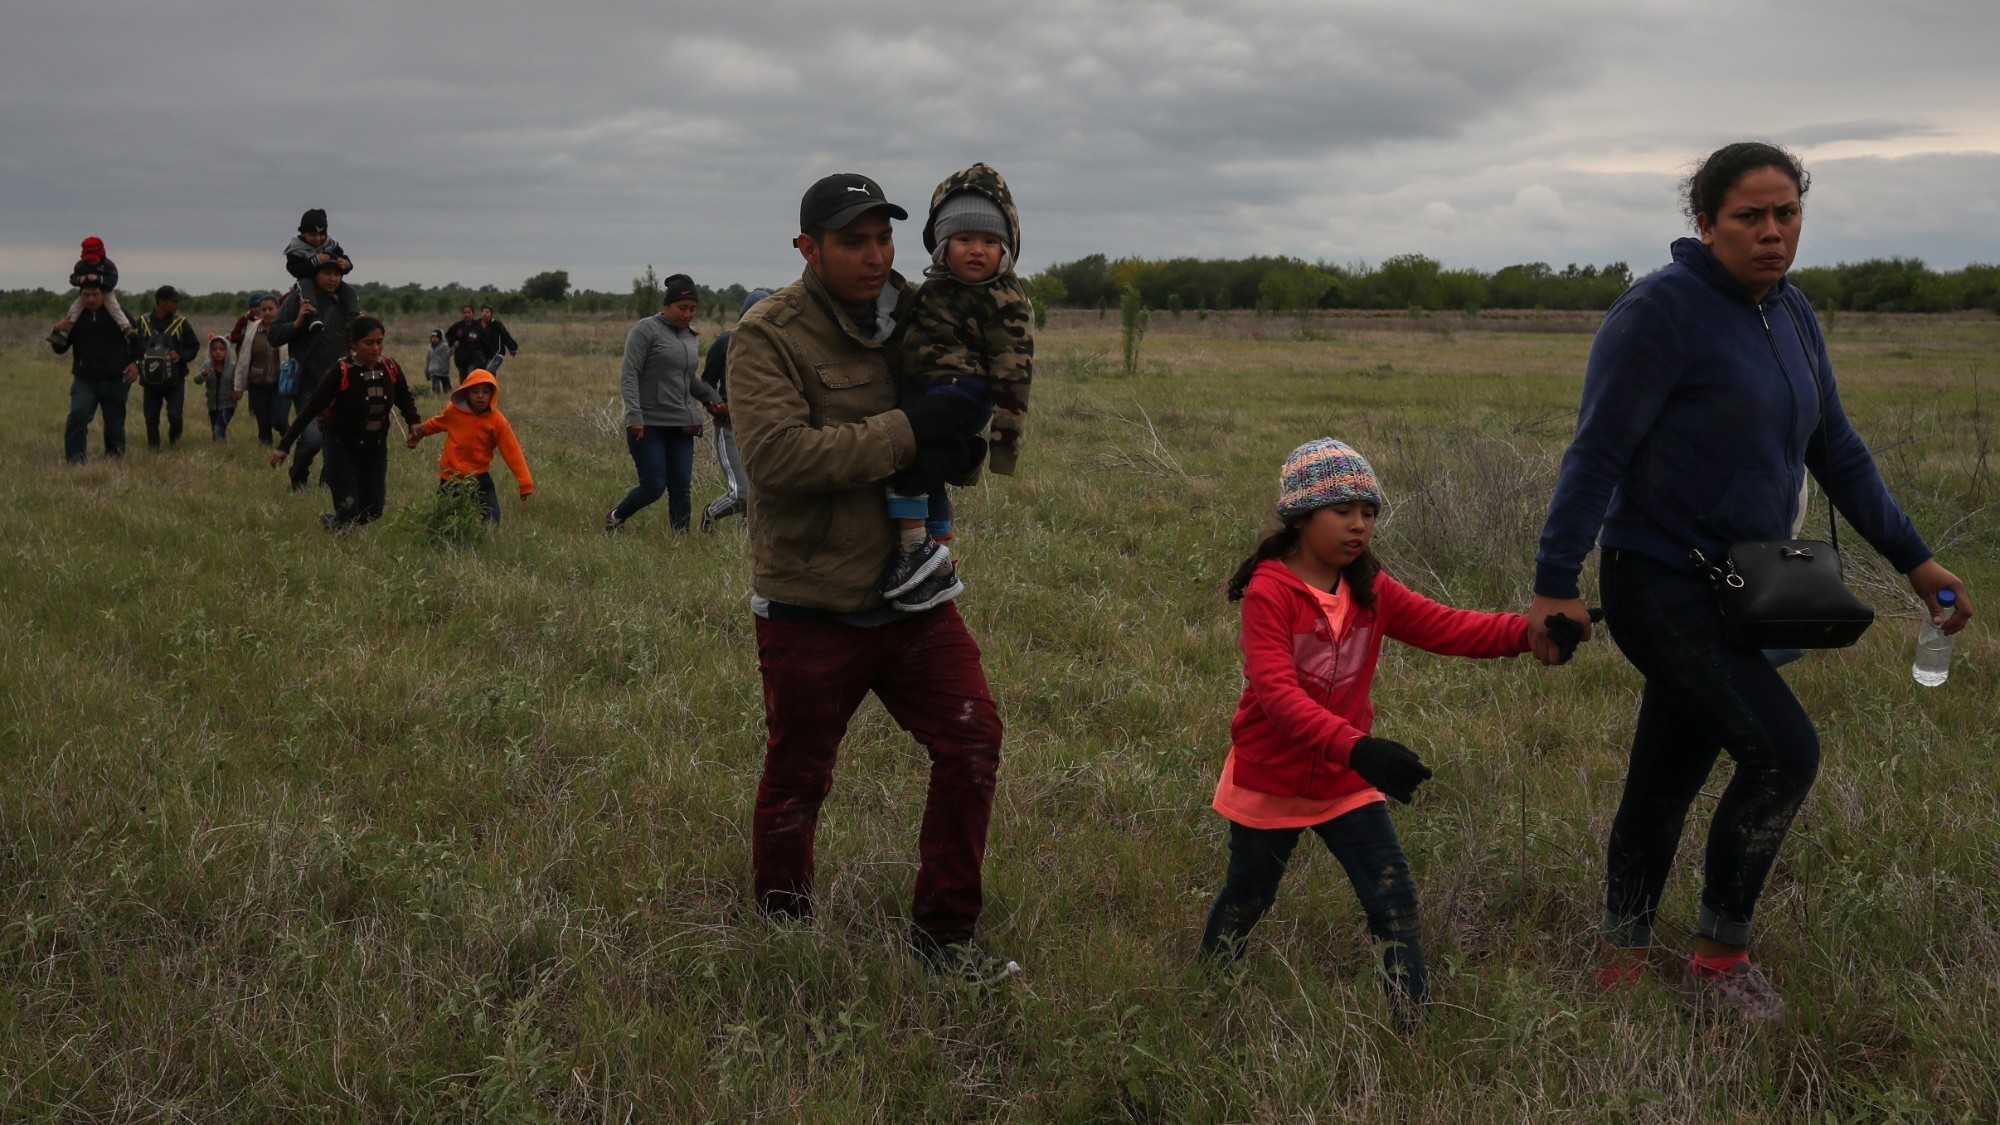 Asylum-seeking families from Central America trek through a field after crossing the Rio Grande River, Penitas, Texas, March 31, 2019, photo by Adrees Latif/Reuters